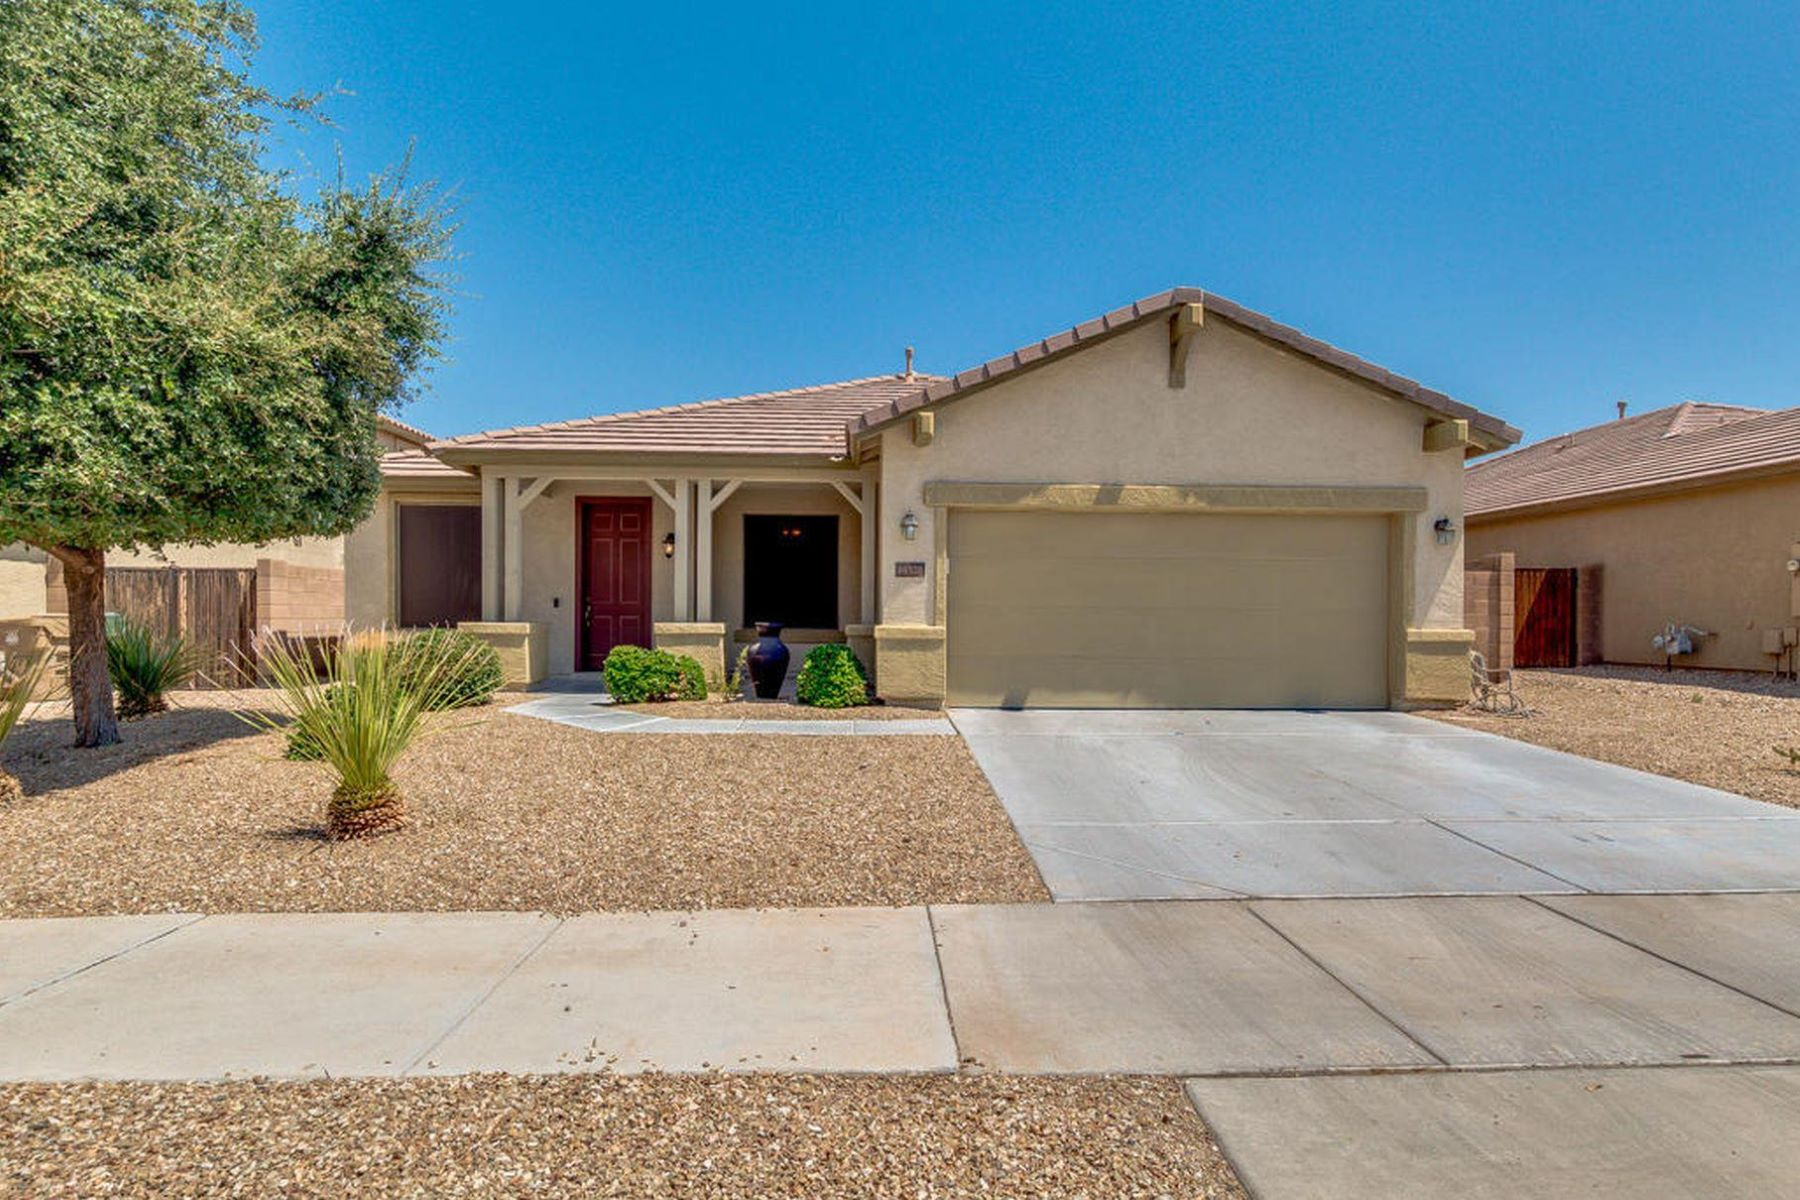 Single Family Homes for Active at Canyon Trails 16528 W SHERMAN ST Goodyear, Arizona 85338 United States